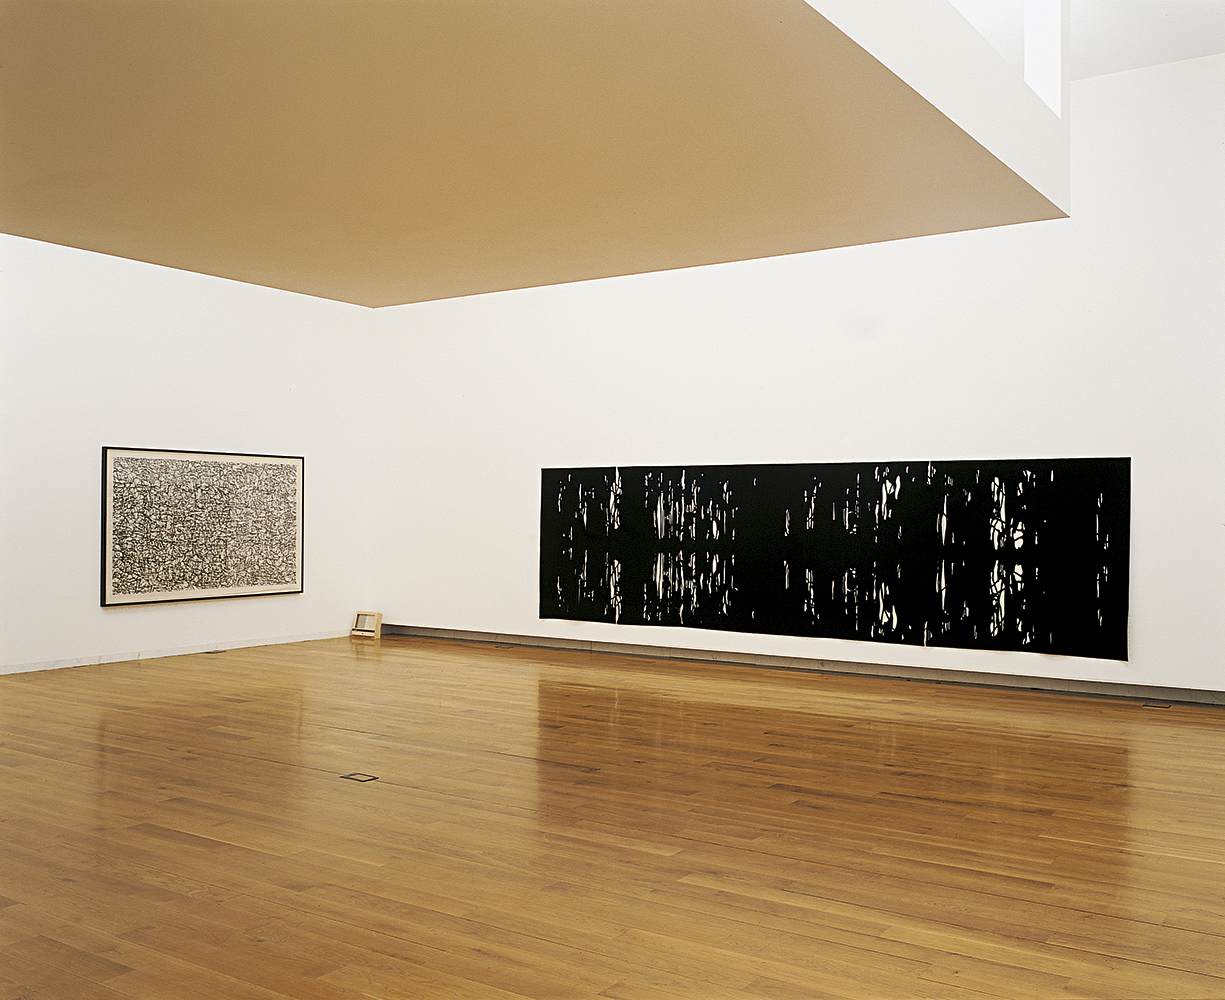 At Your Side, 2002, Wool felt, 165 x 609 cm